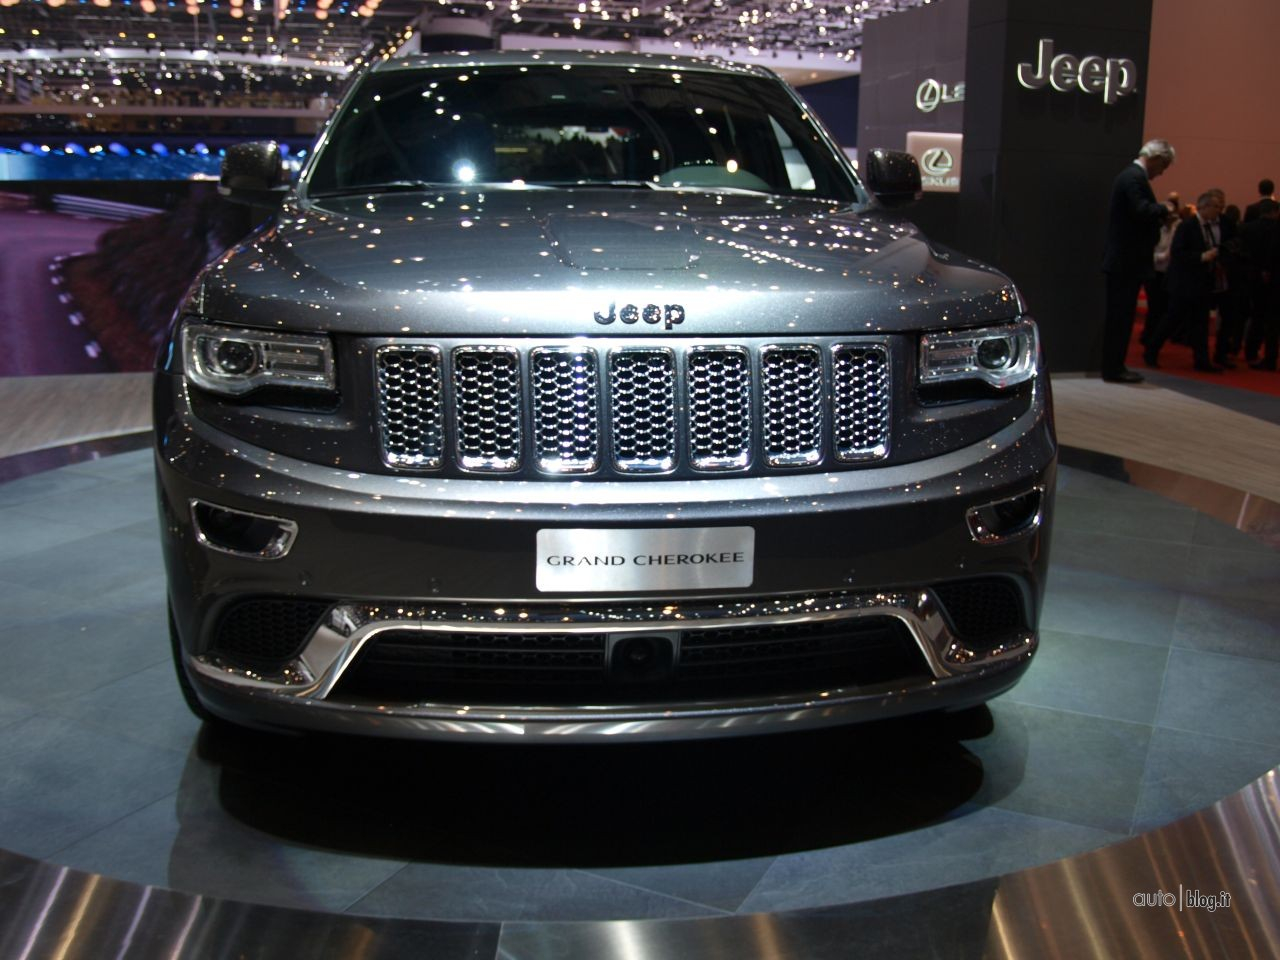 Home » 2013 Jeep Grand Cherokee Commercial Voice